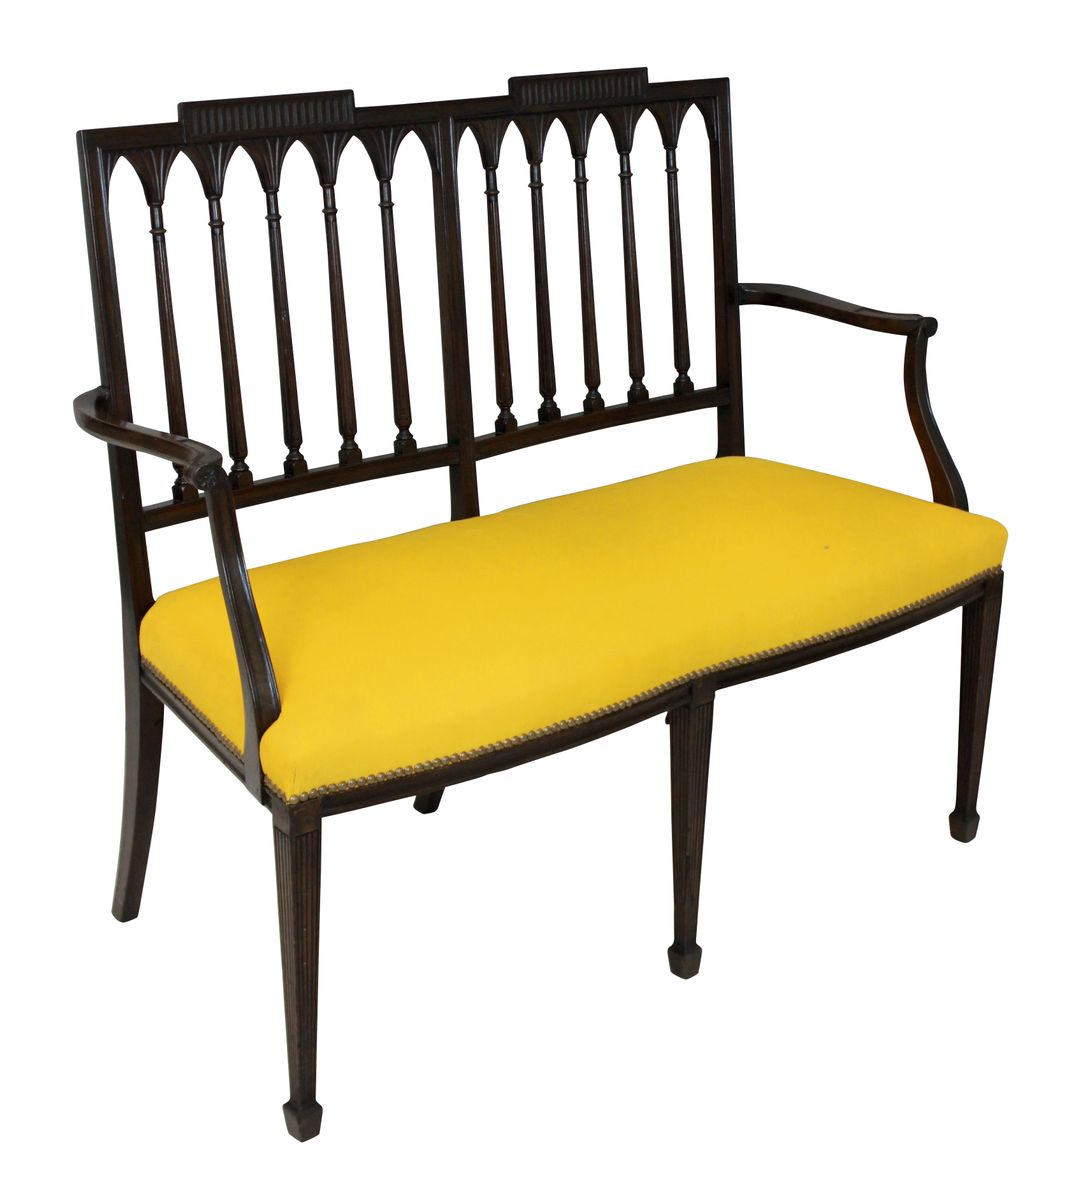 Antique Federal Bench for sale at Pamono